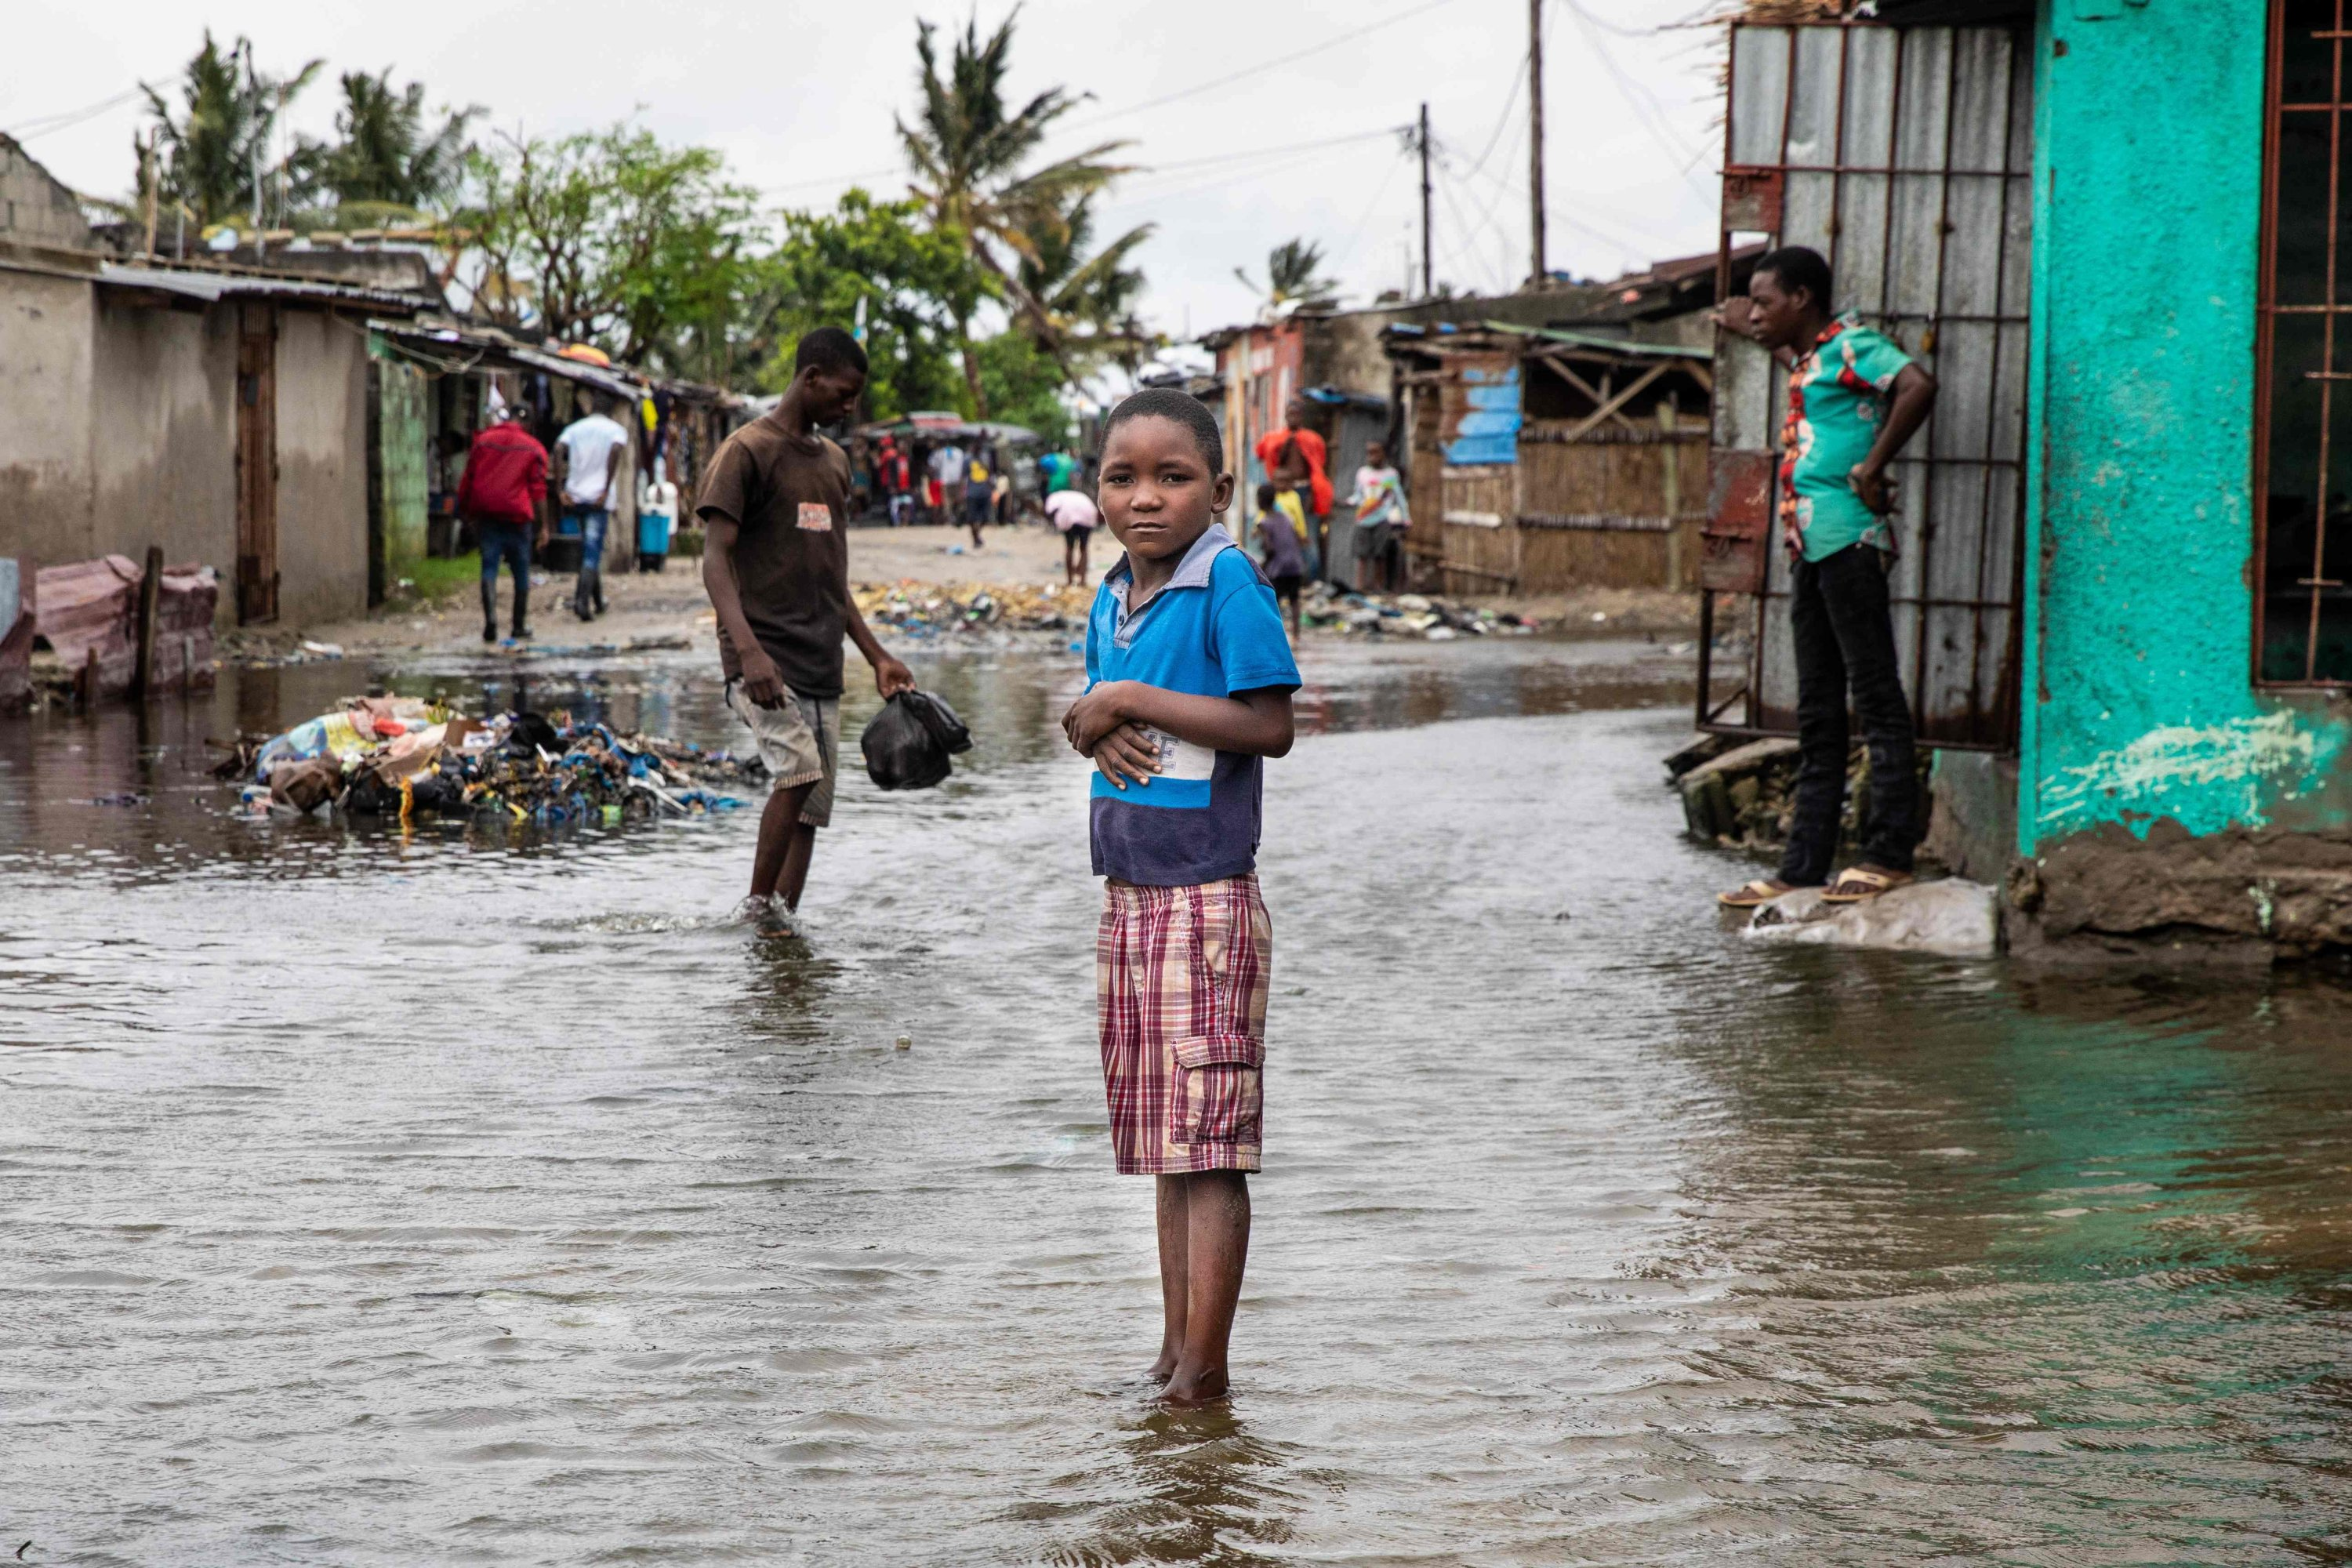 Residents prepare for the arrival of Cyclone Eloise, in the neighborhood of Praia Nova, in Beira, Jan. 22, 2021. (AFP Photo)